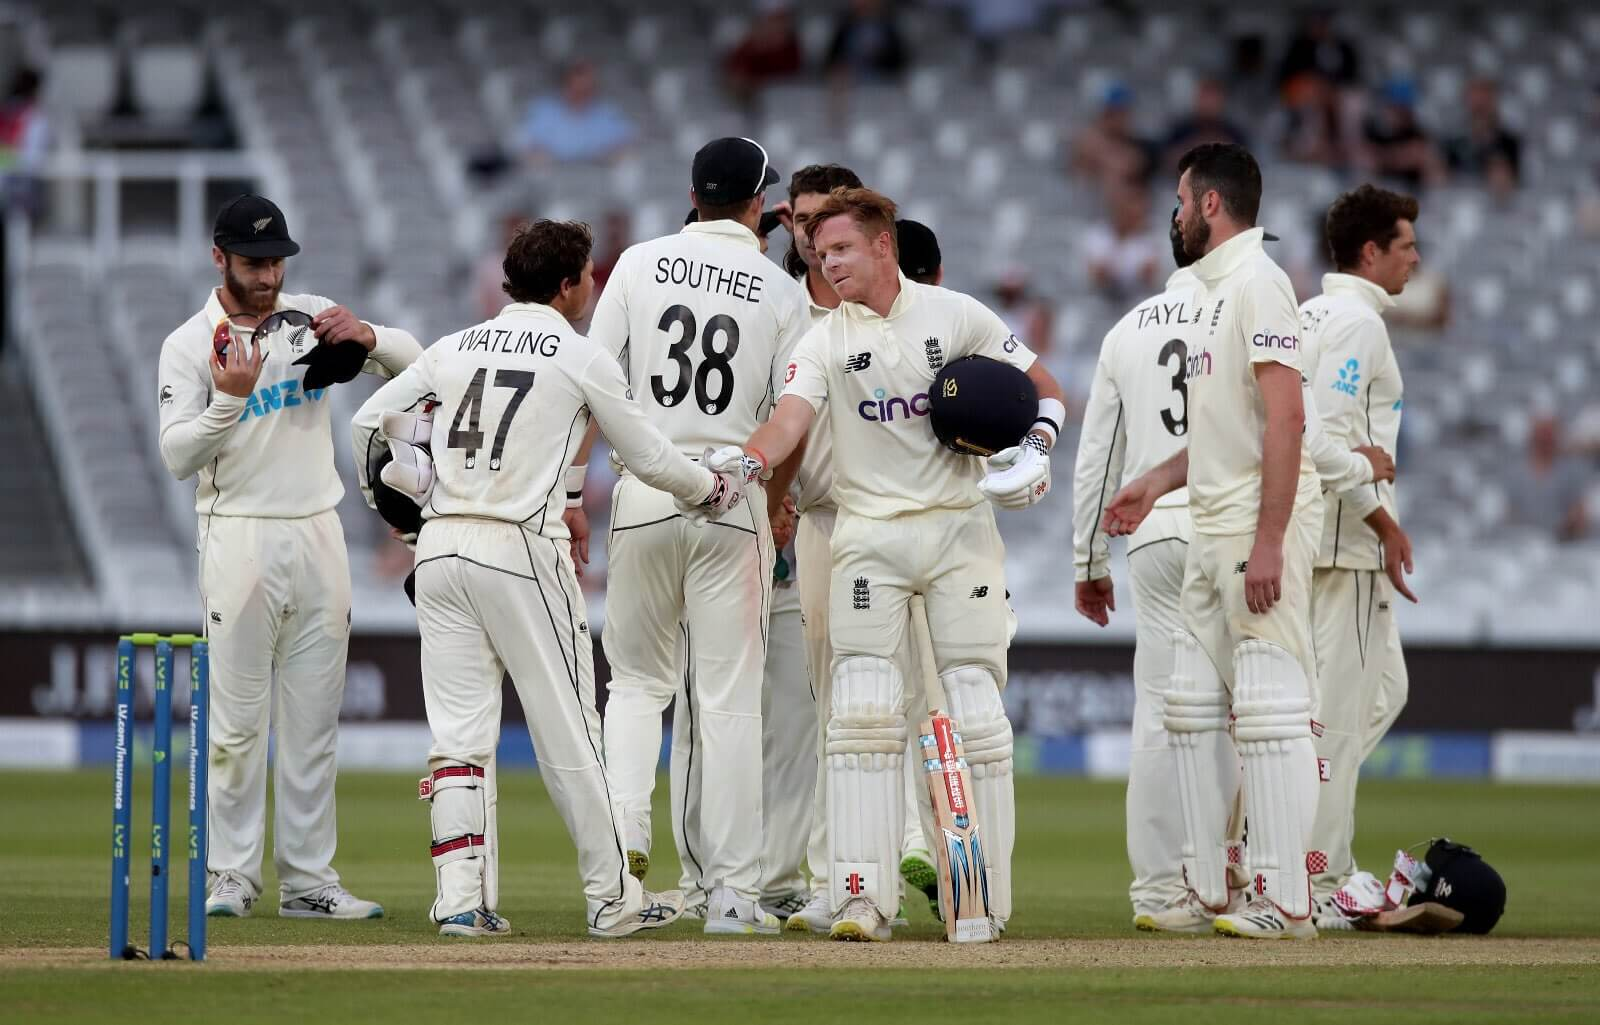 Impact Of Covid 19 On Cricket